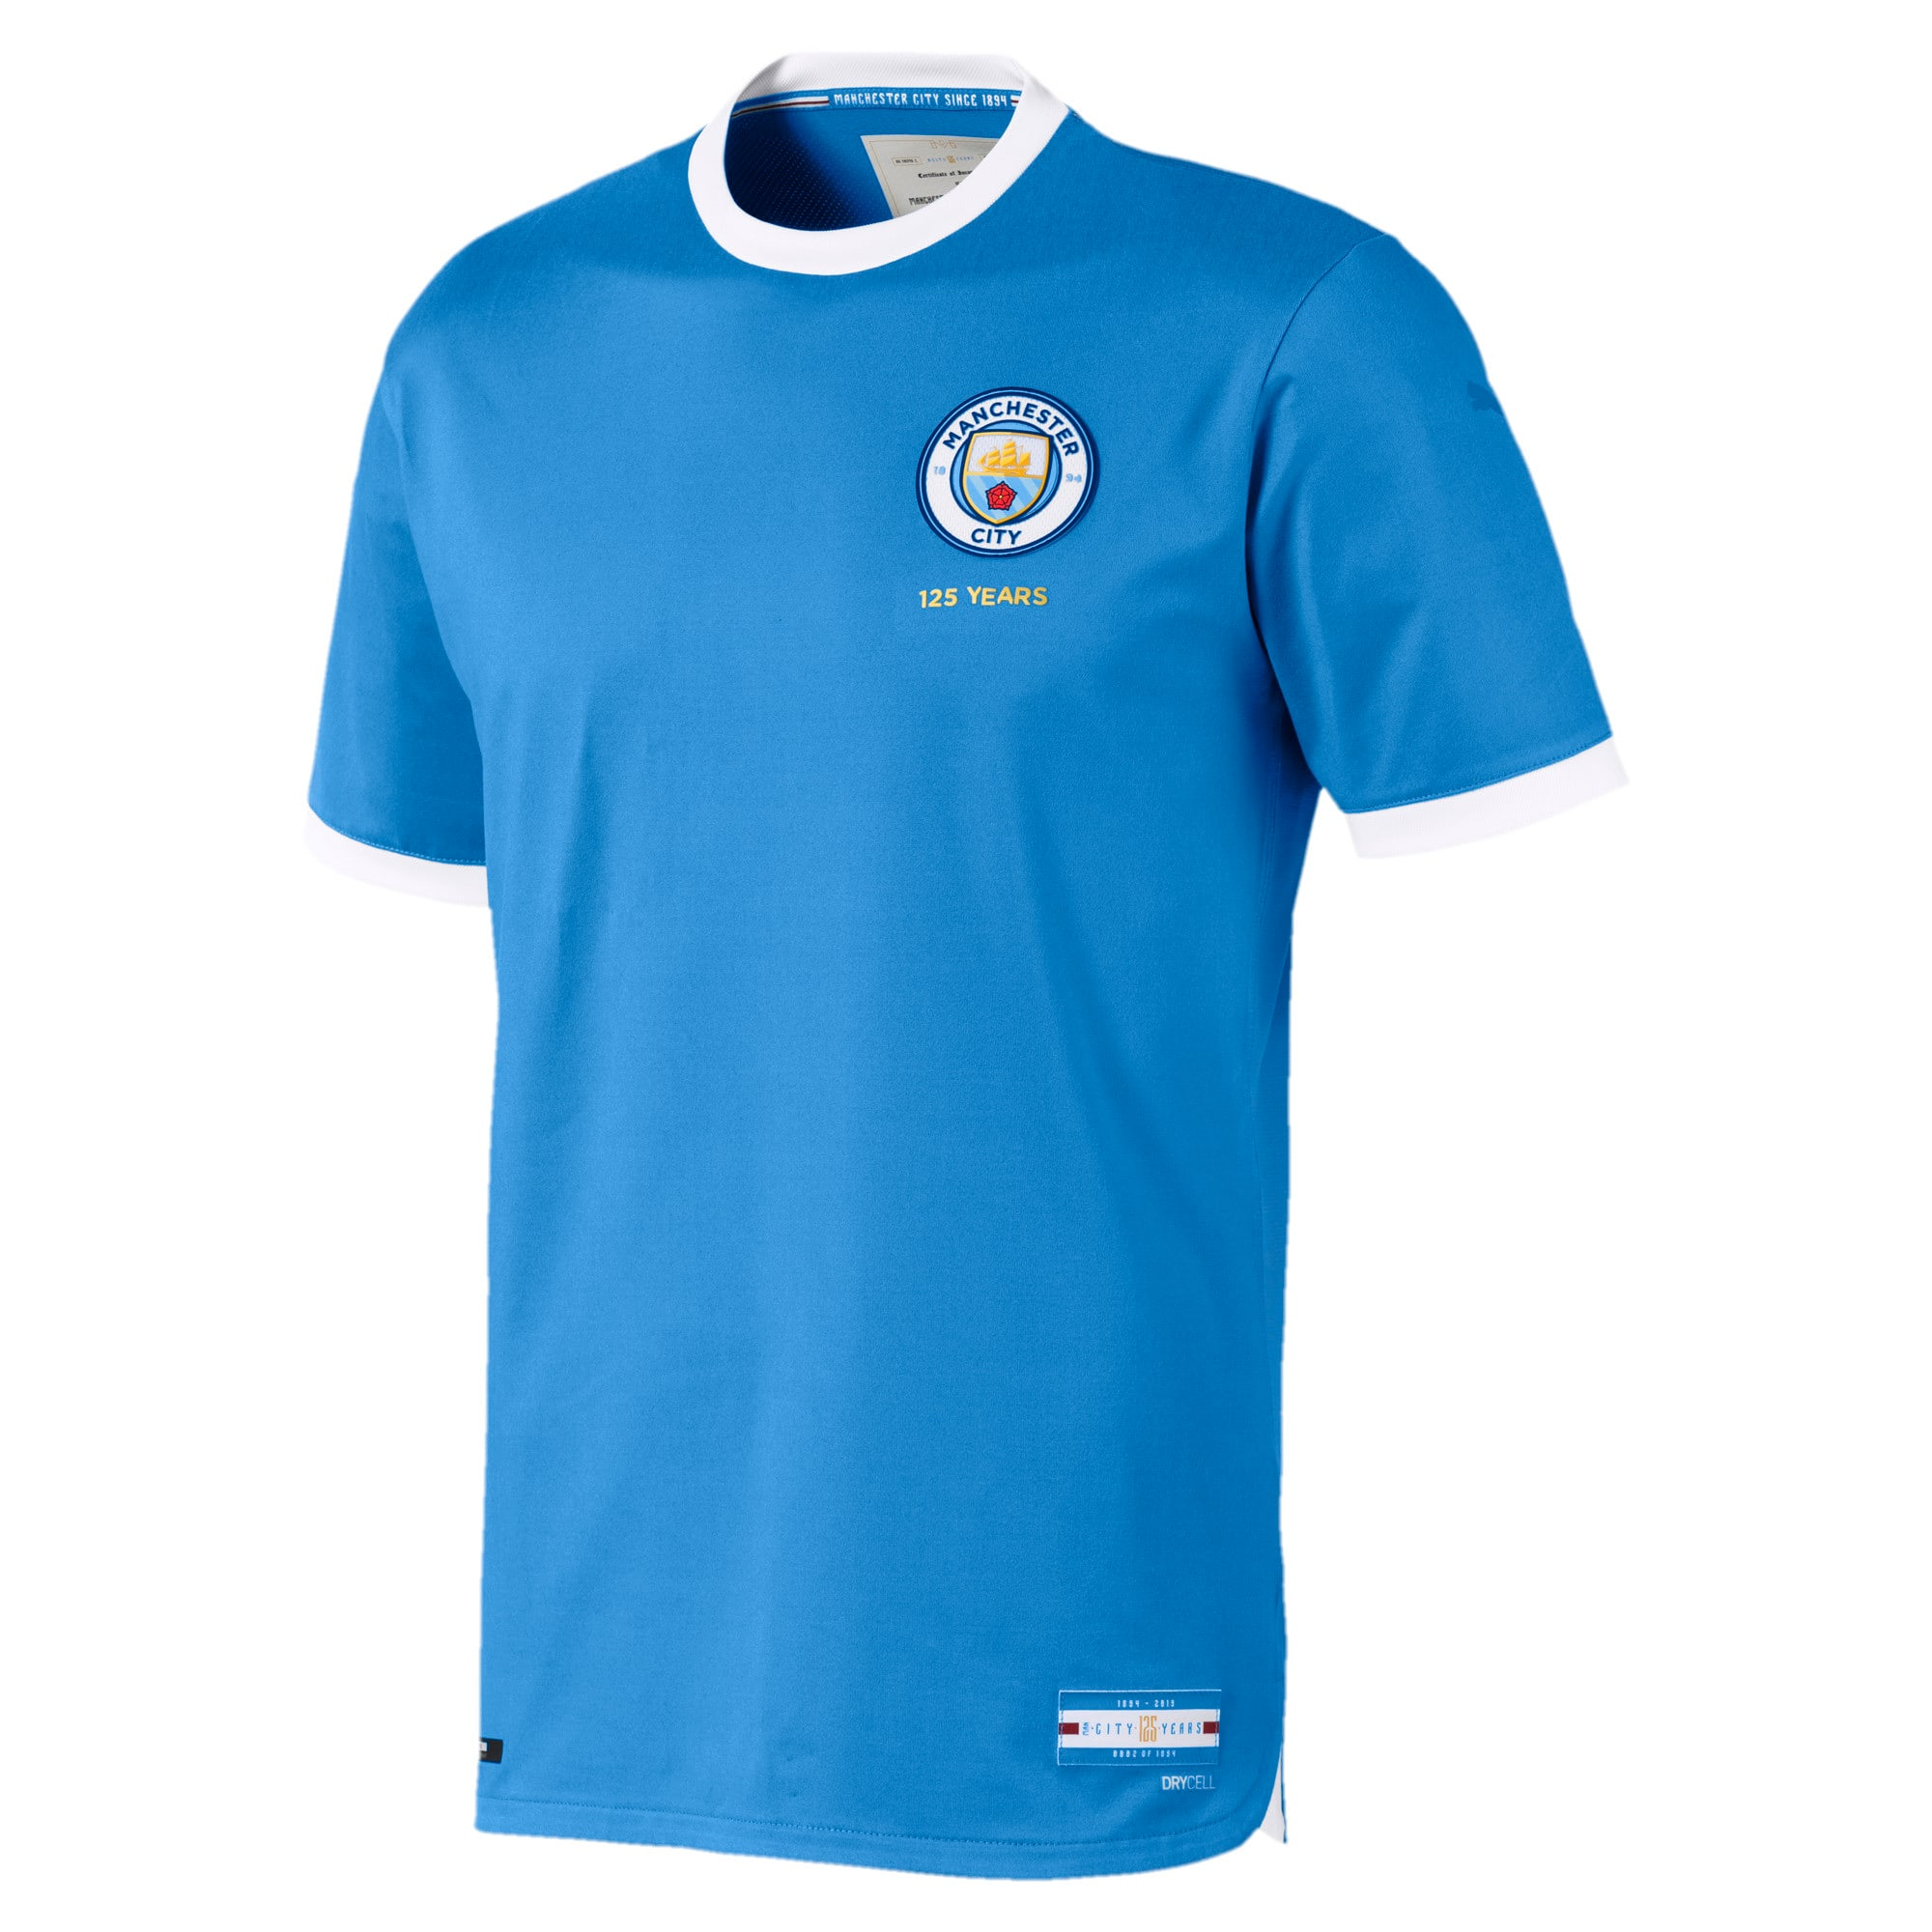 Manchester City Football Club 125 Year Anniversary Authentic Jersey, Marina-Puma White, large